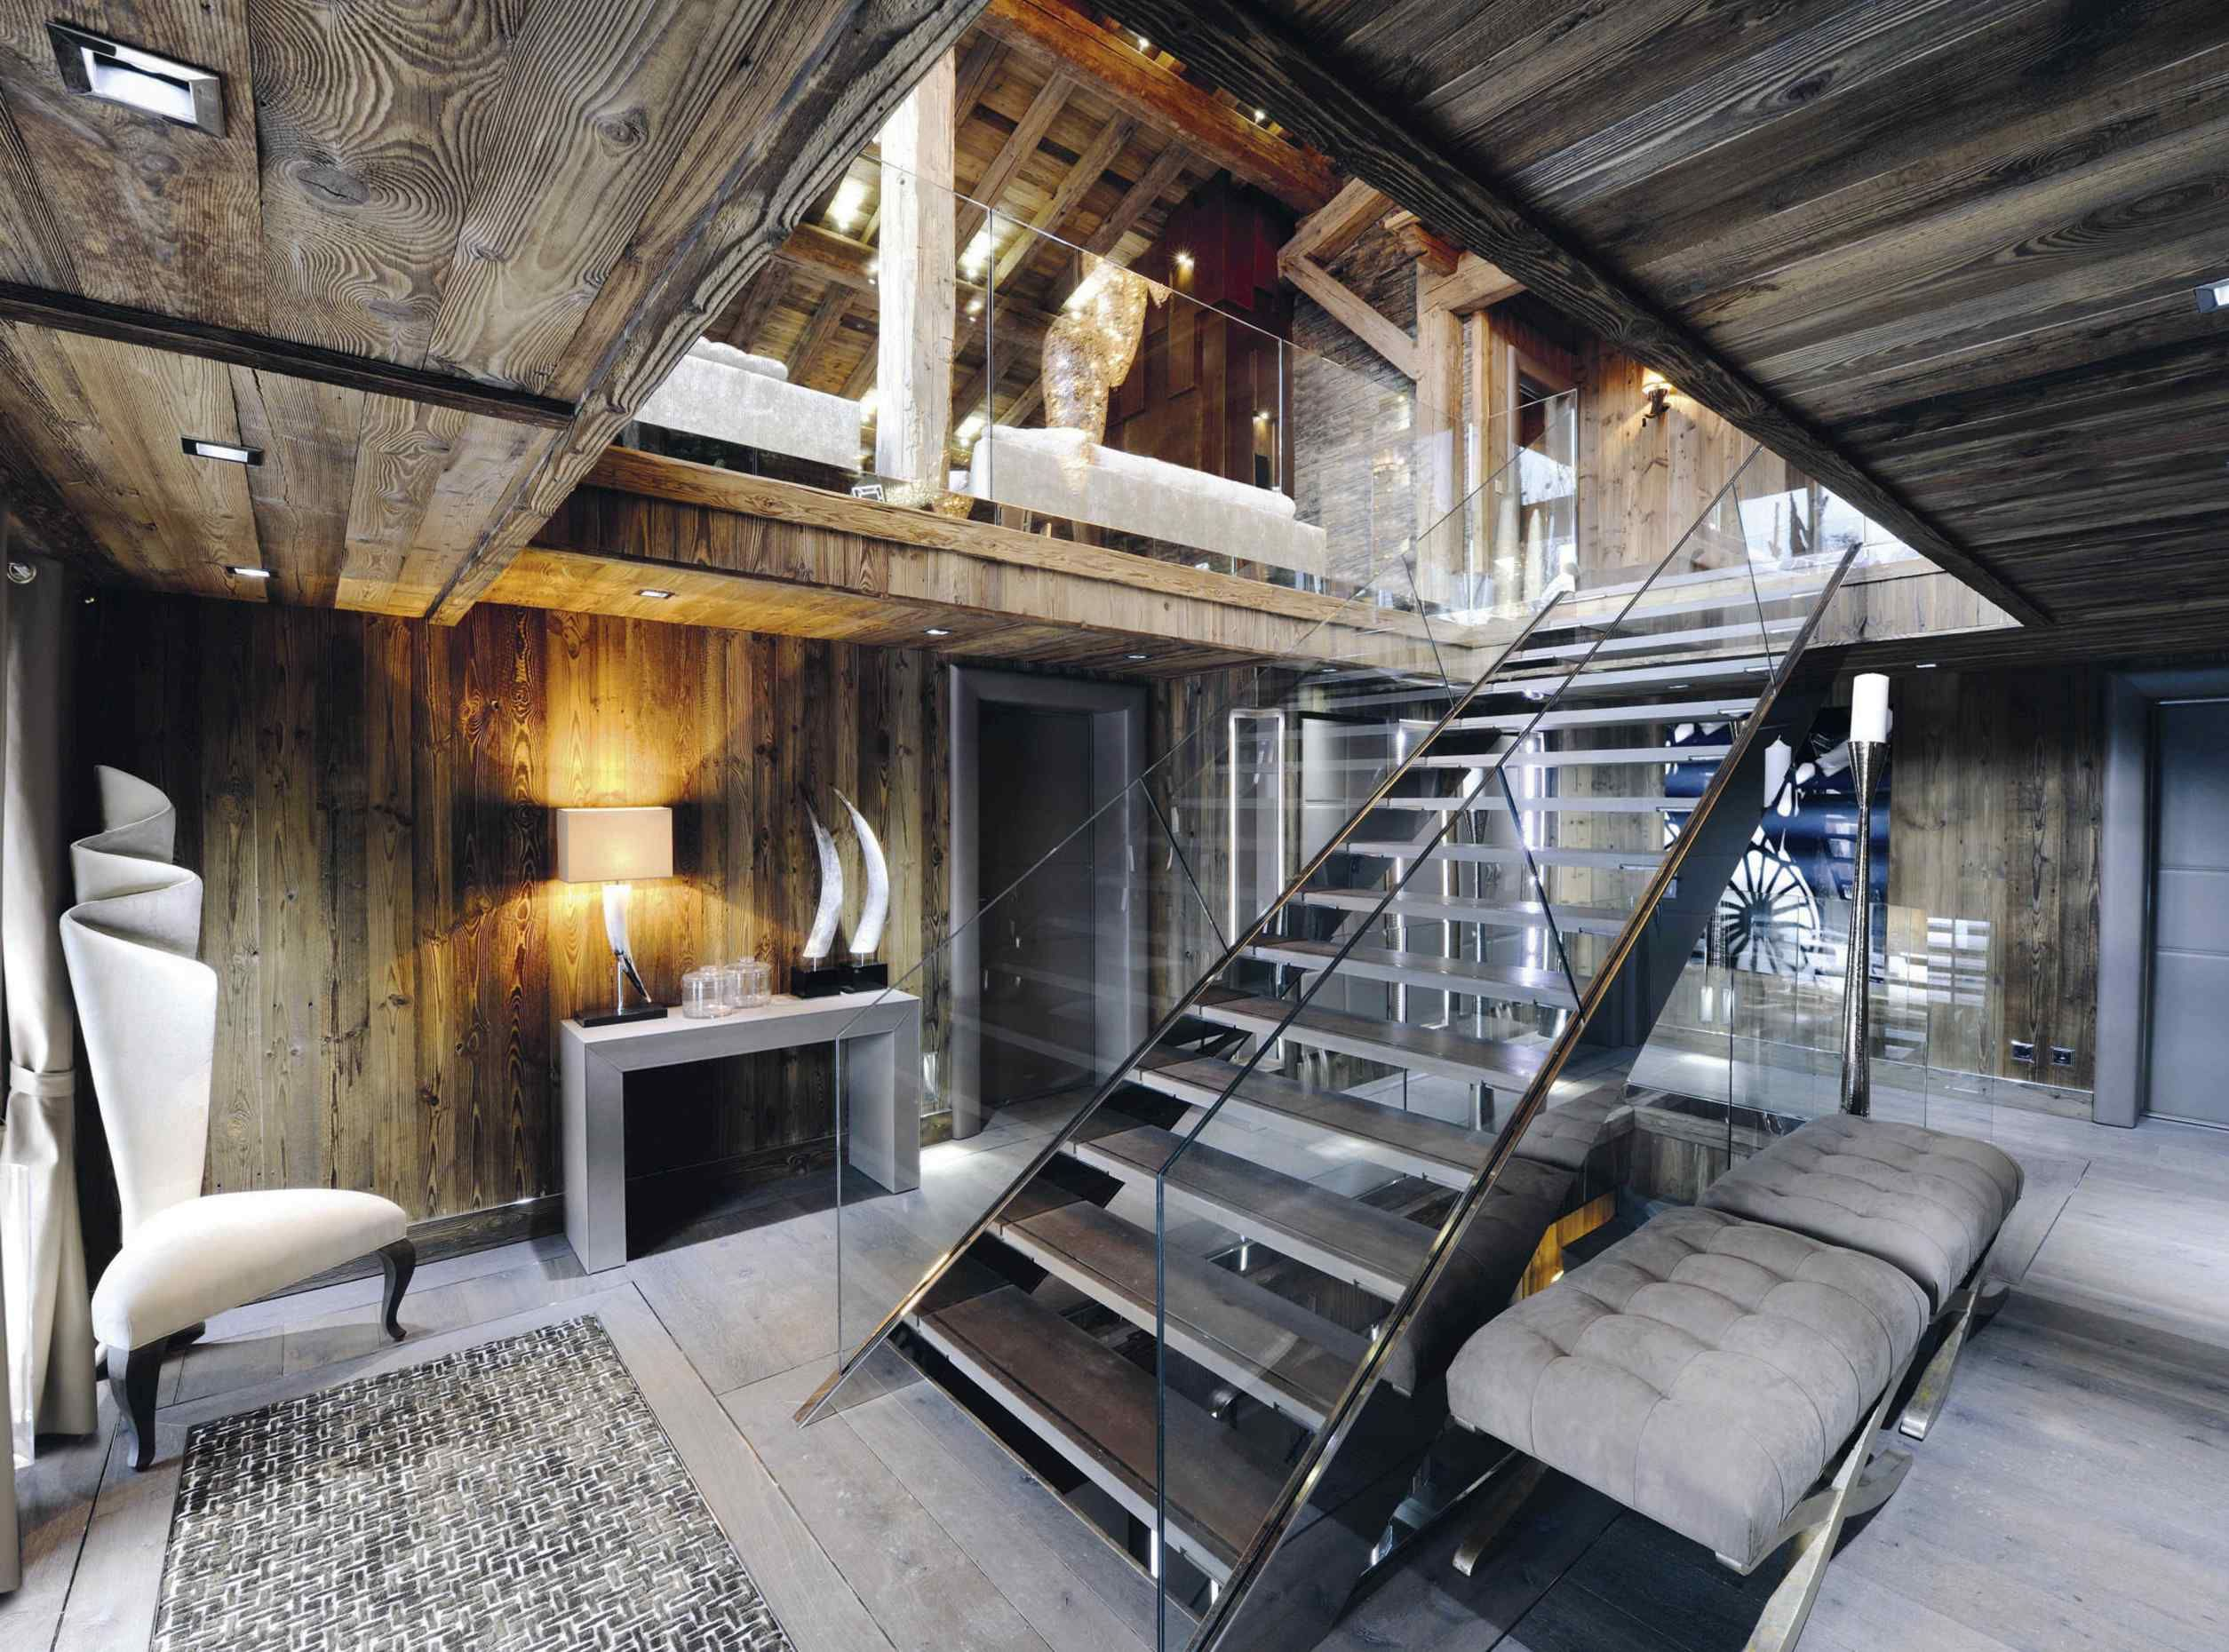 Ski chalet for clubbers chalets ski chalet skiing